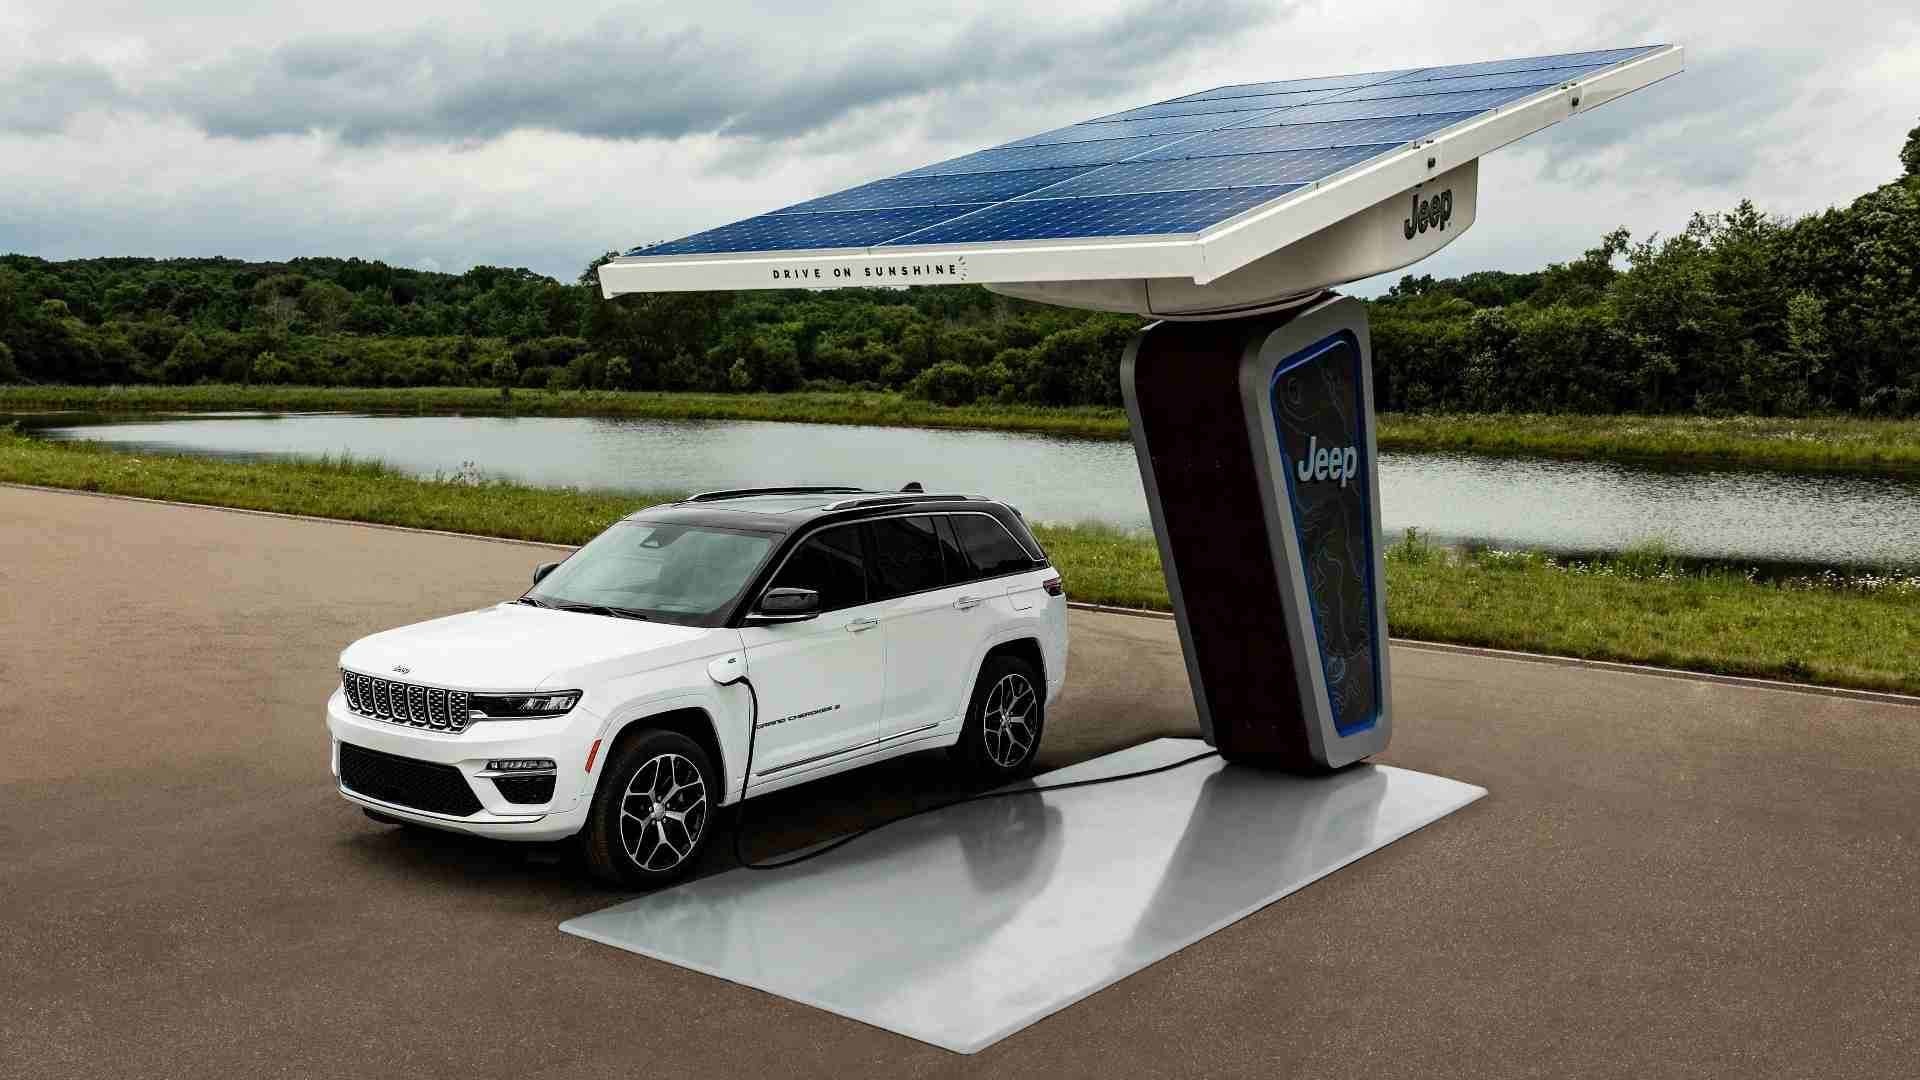 98 percent of the portfolio will be electrified by 2025 - Technology News, Firstpost